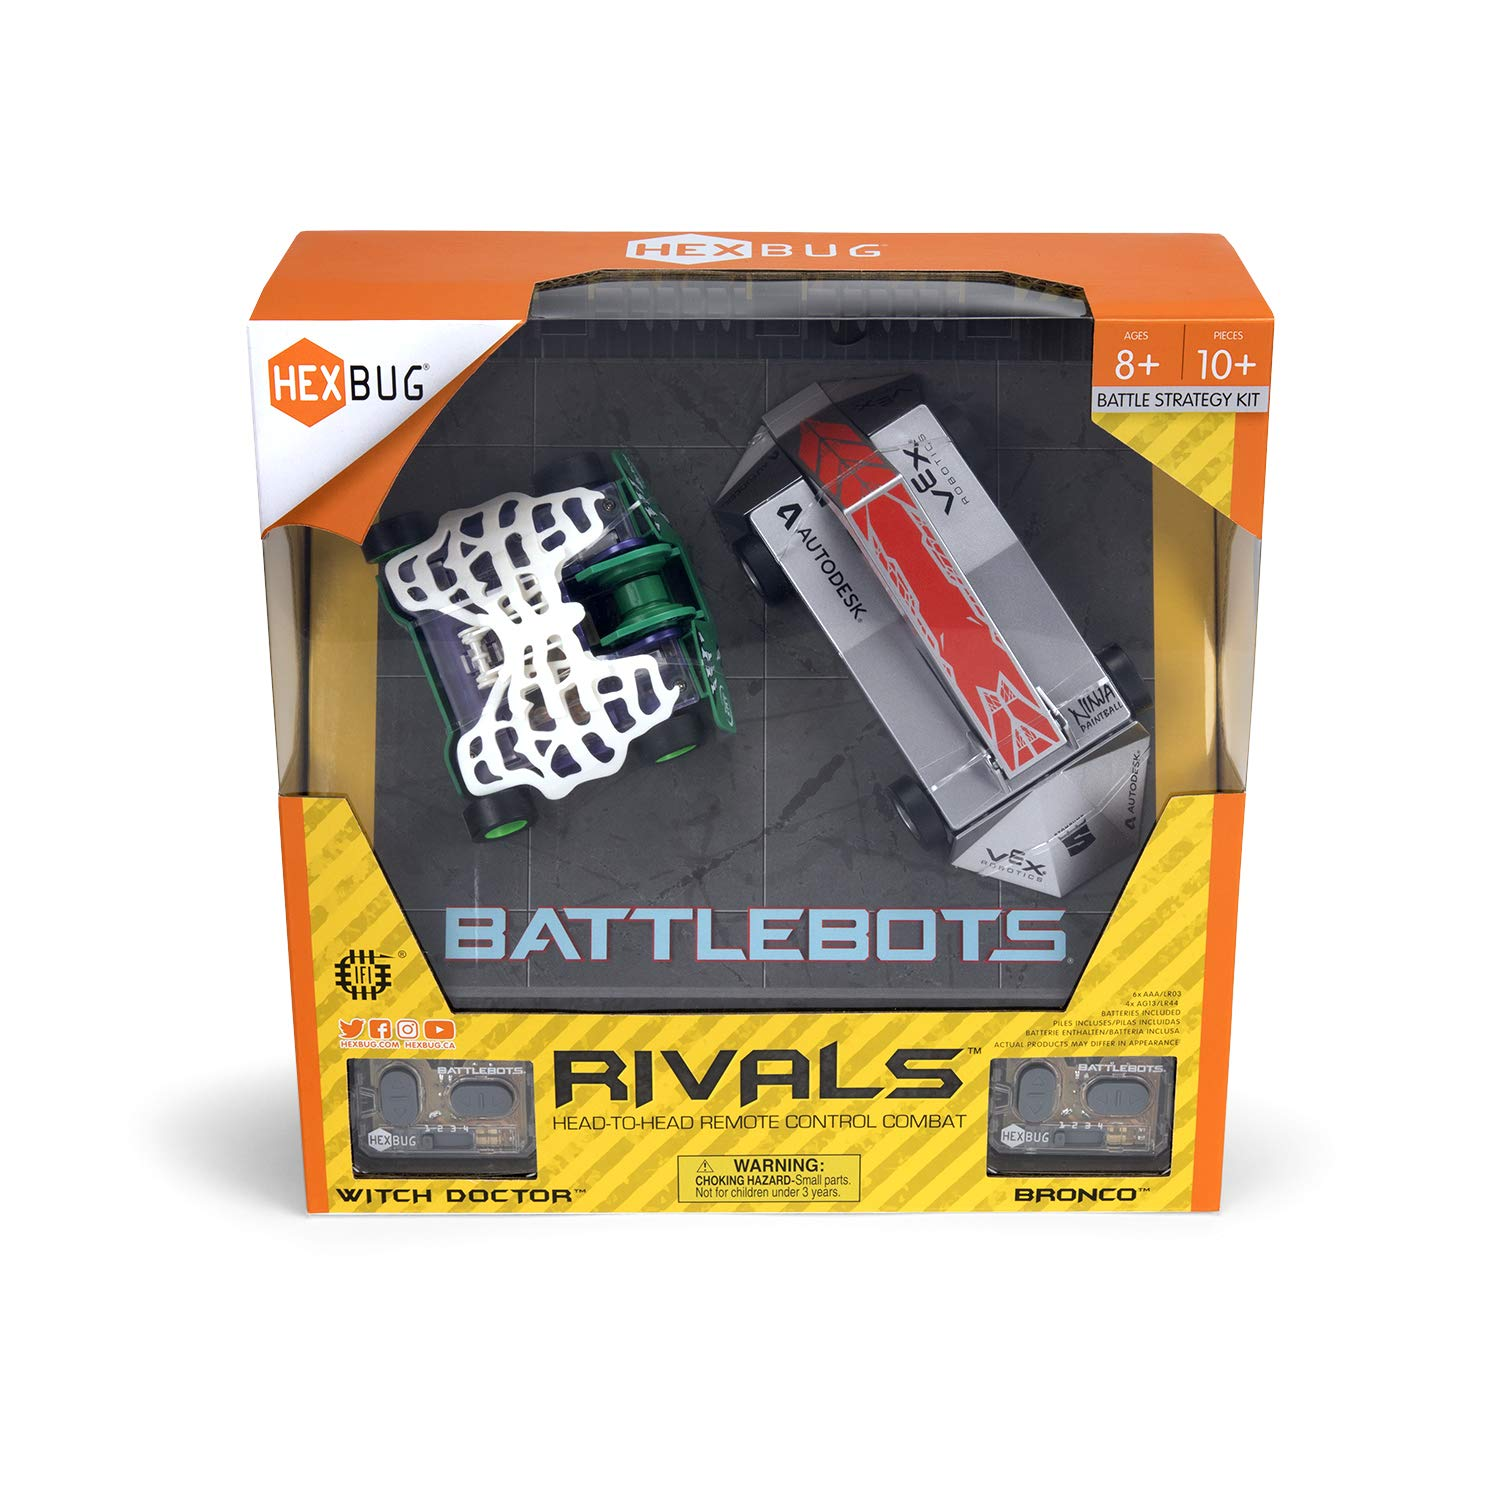 HEXBUG BattleBots Rivals (Bronco and Witch Doctor) by HEXBUG (Image #3)